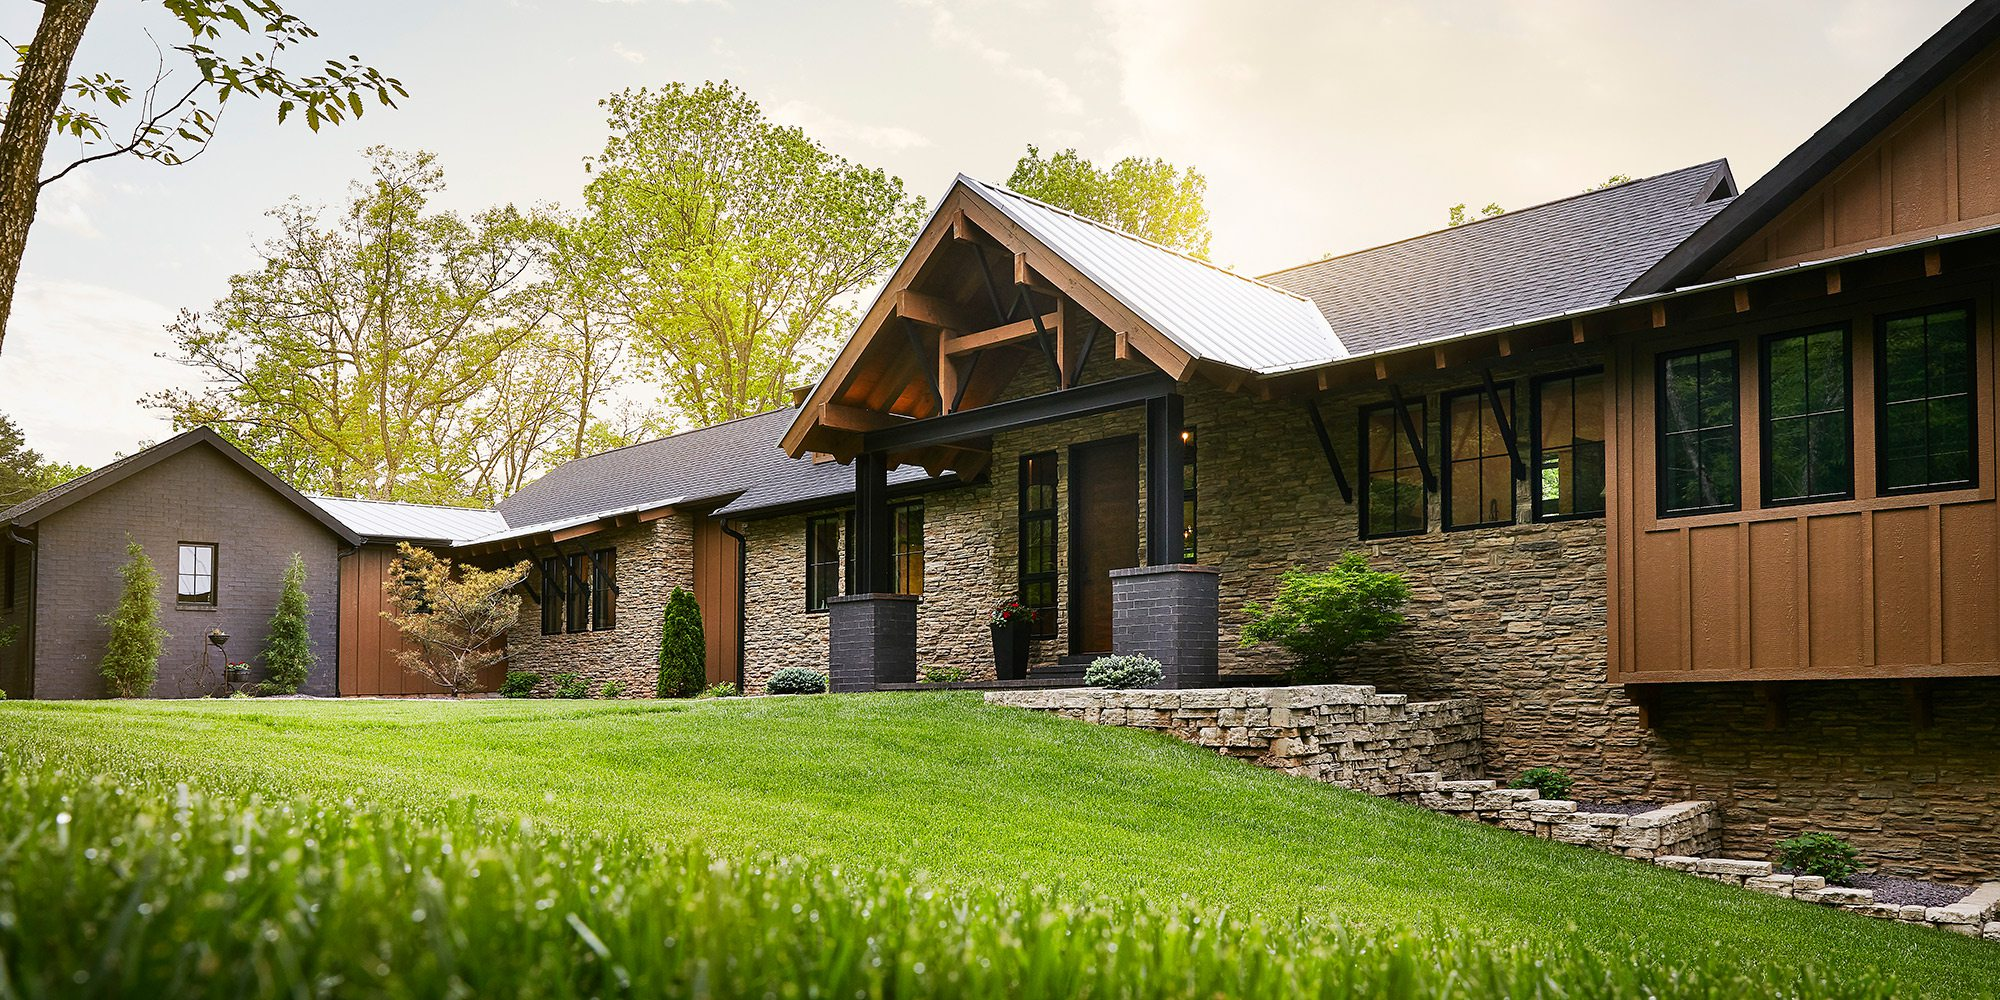 Exterior of rustic midcentury modern home in southwest Missouri